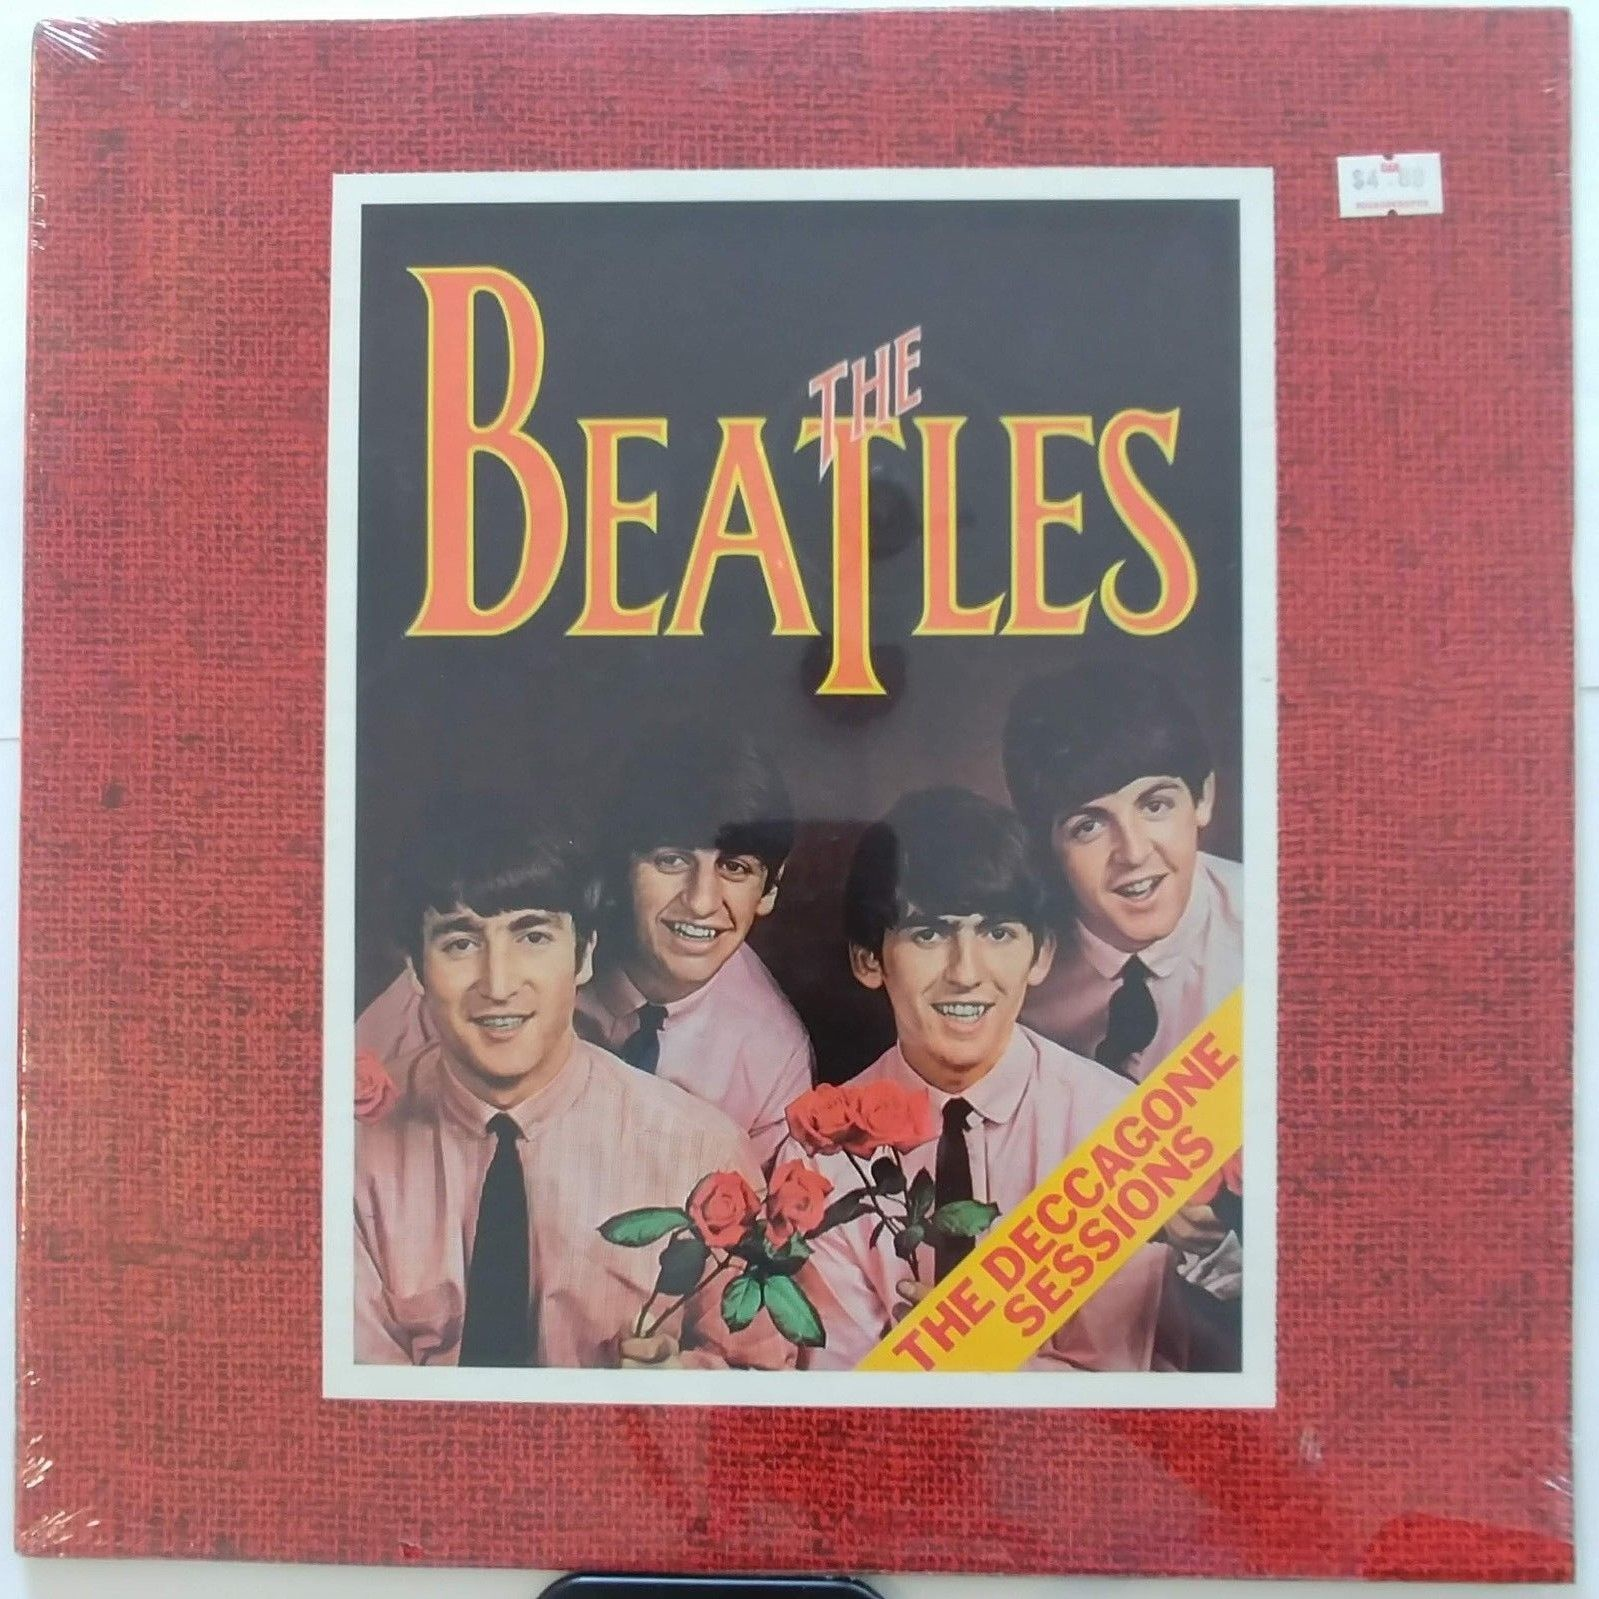 THE BEATLES LP (The Deccagone Sessions) RARE STILL SEALED NM bootleg